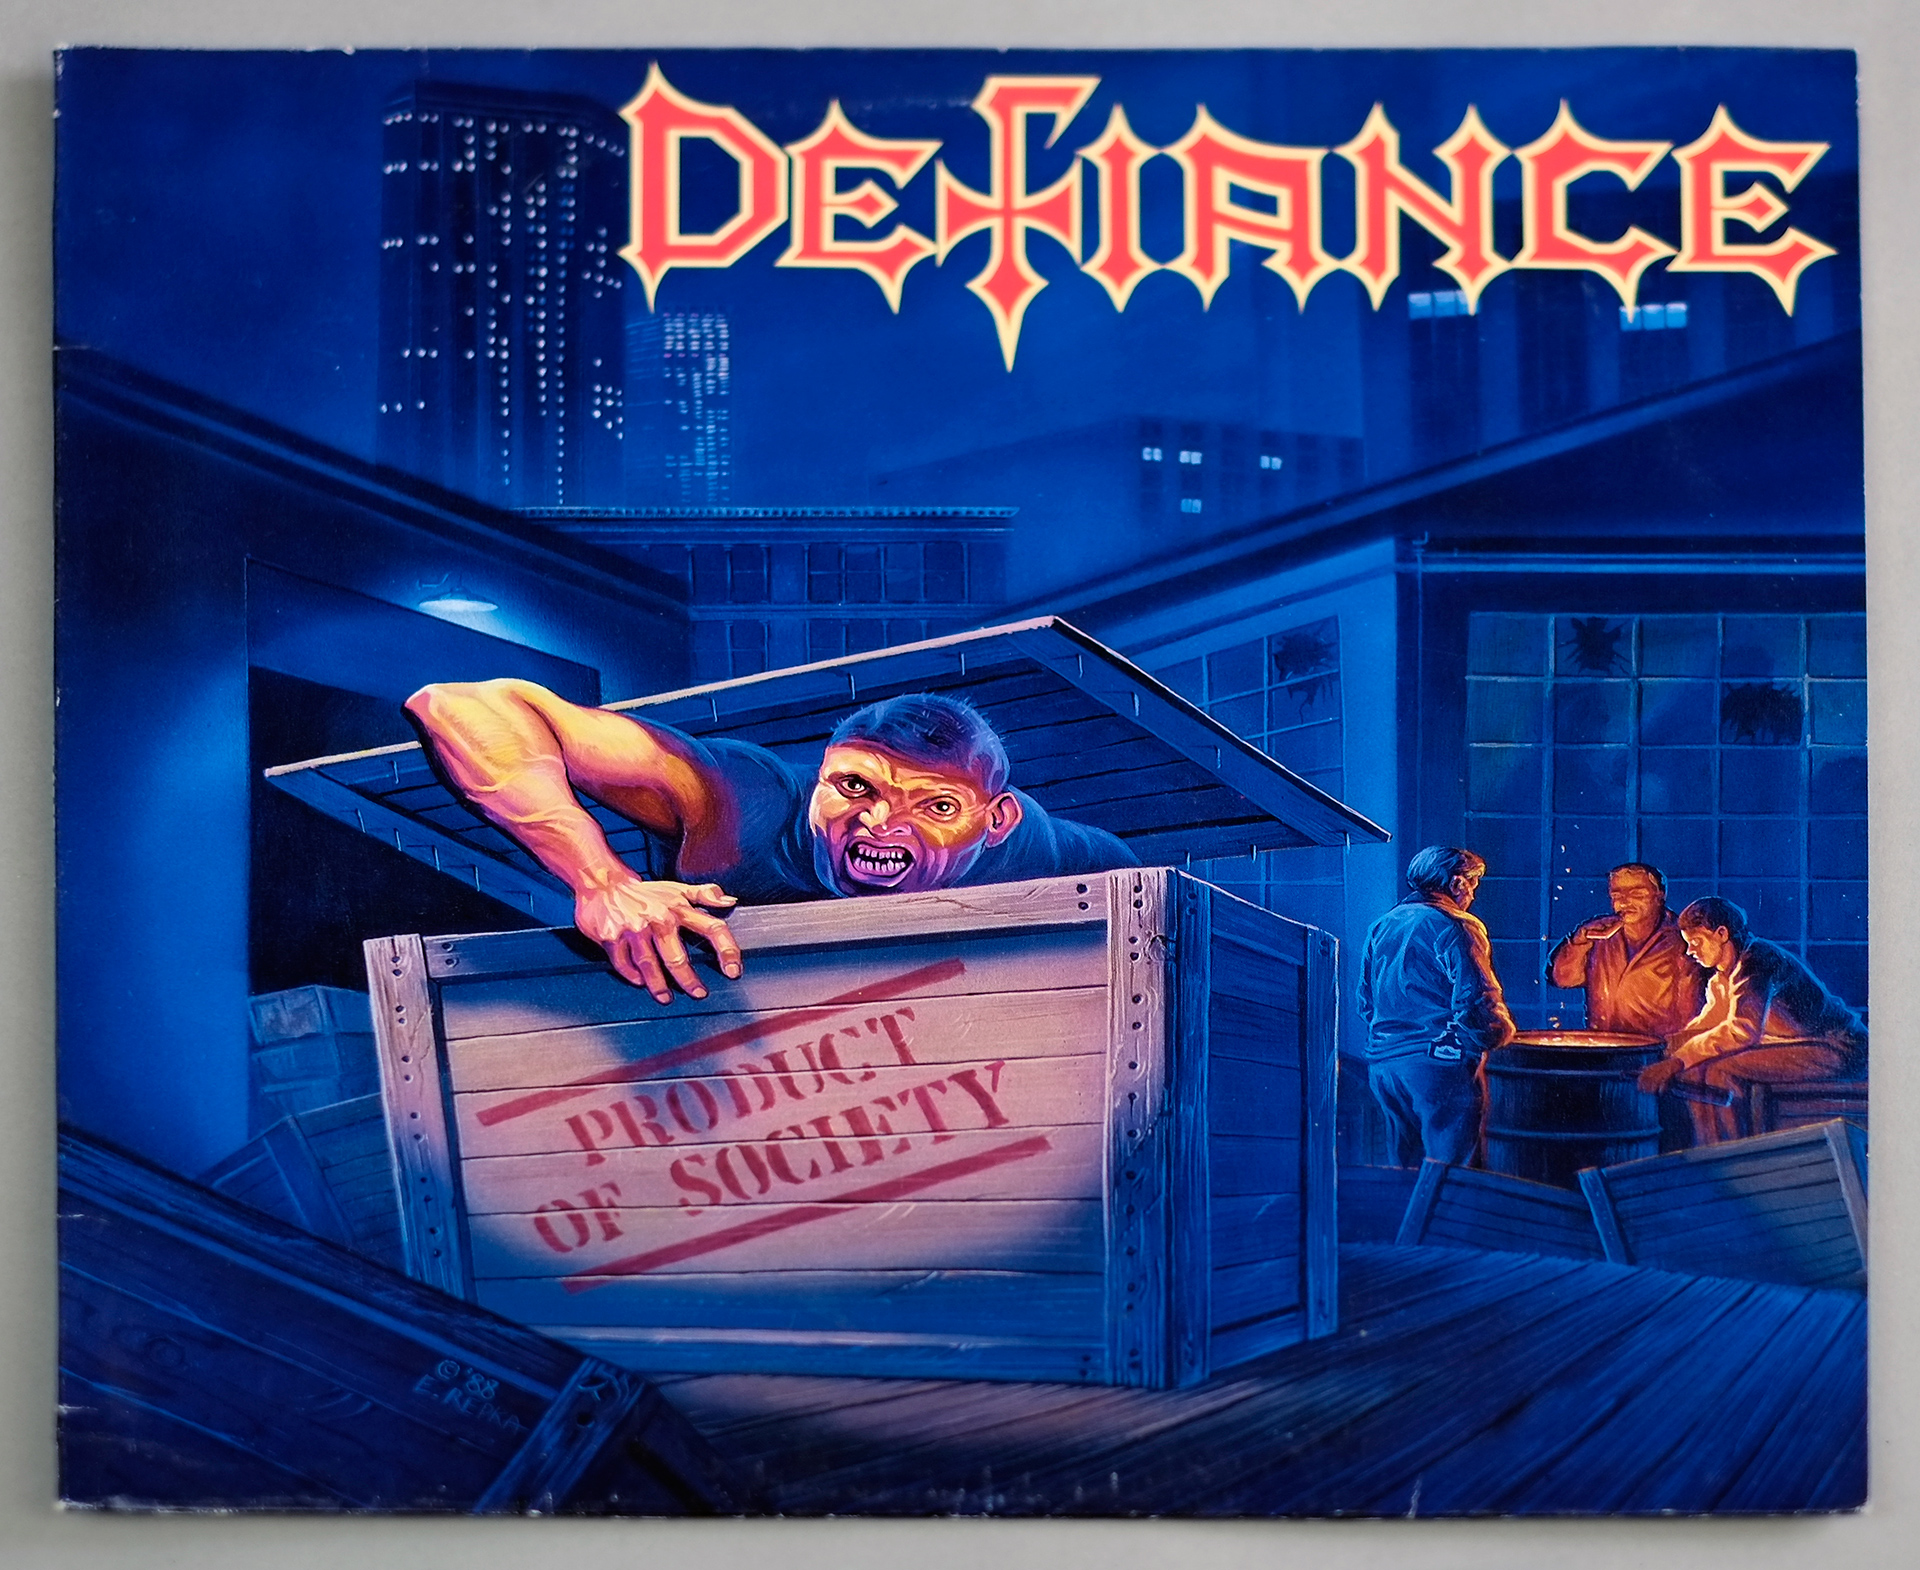 """DEFIANCE PRODUCT OF SOCIETY 12"""" LP VINYL"""